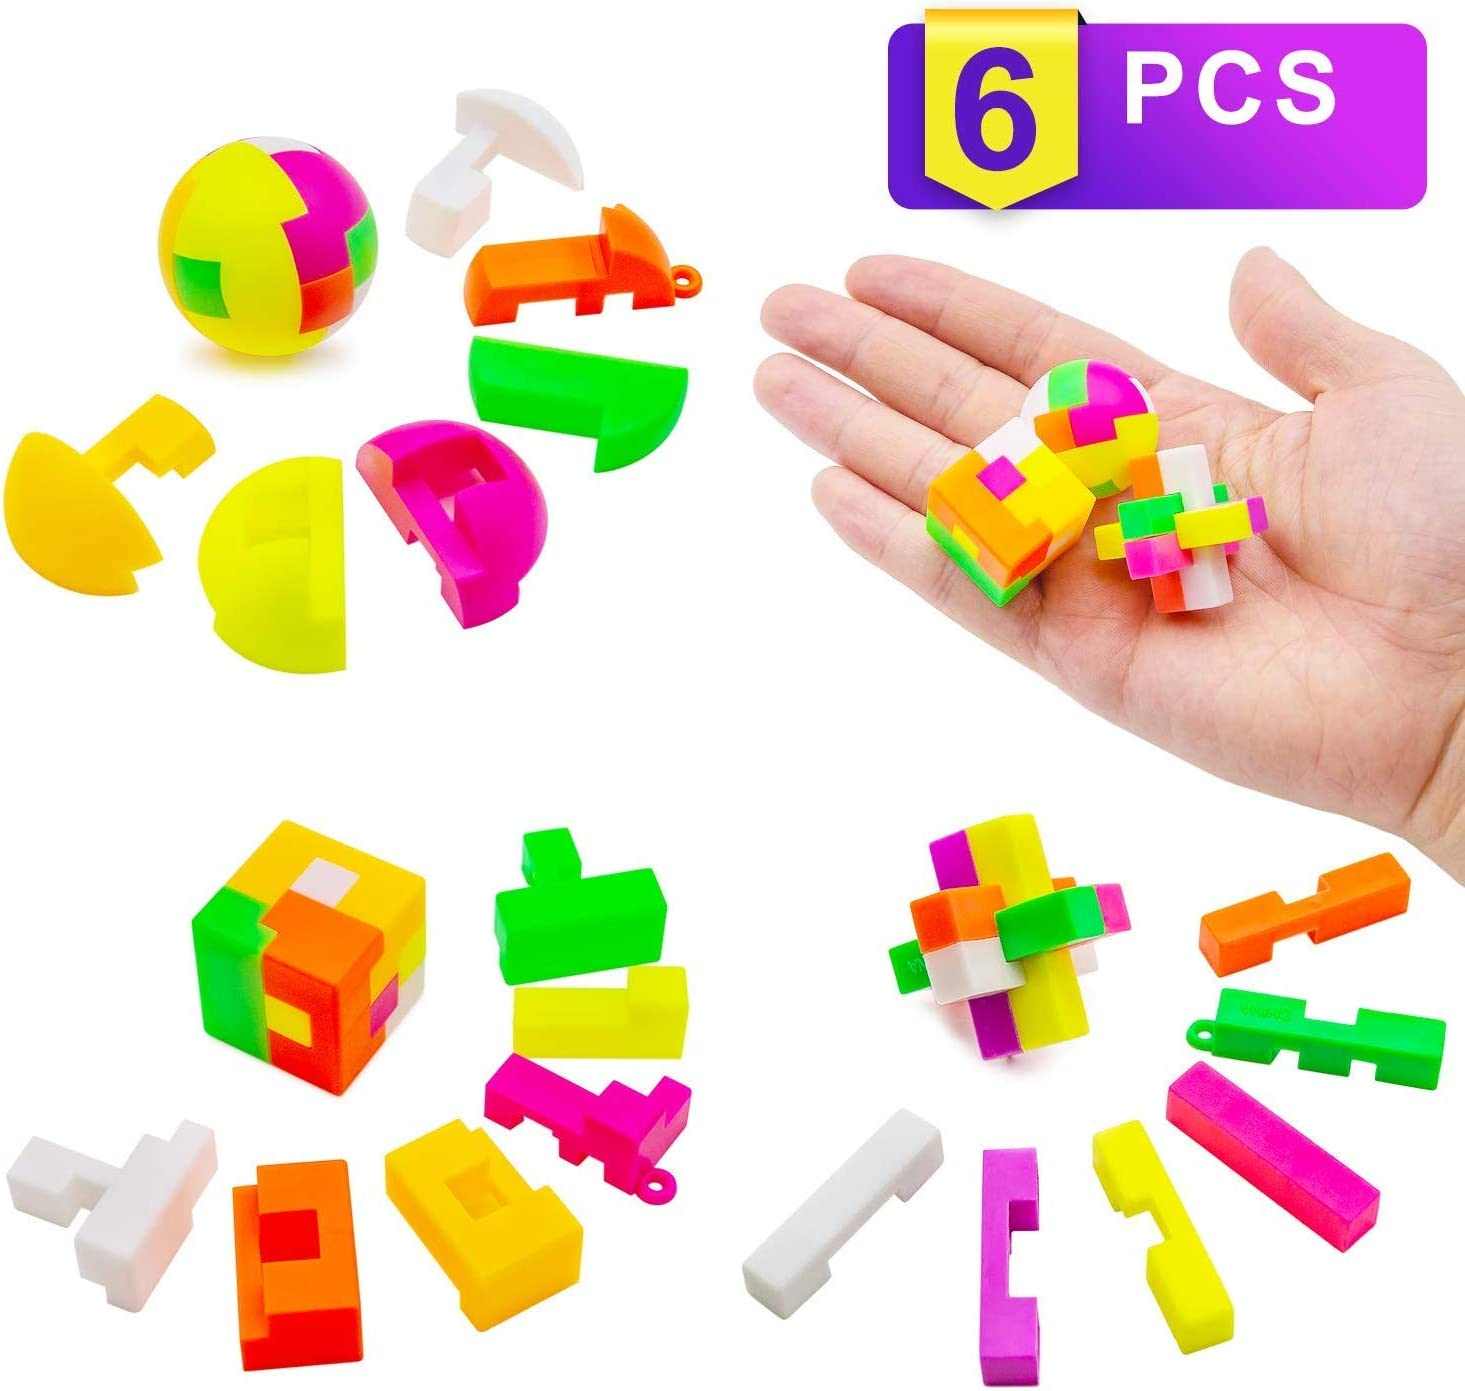 40Pcs Novelty Toys Designed for Classroom Prize Box Toys,Treasure Box Prizes,Goodie Bag/&Pinata Fillers,Party Favors for Kids,Birthday Gifts,Prize Box Toys